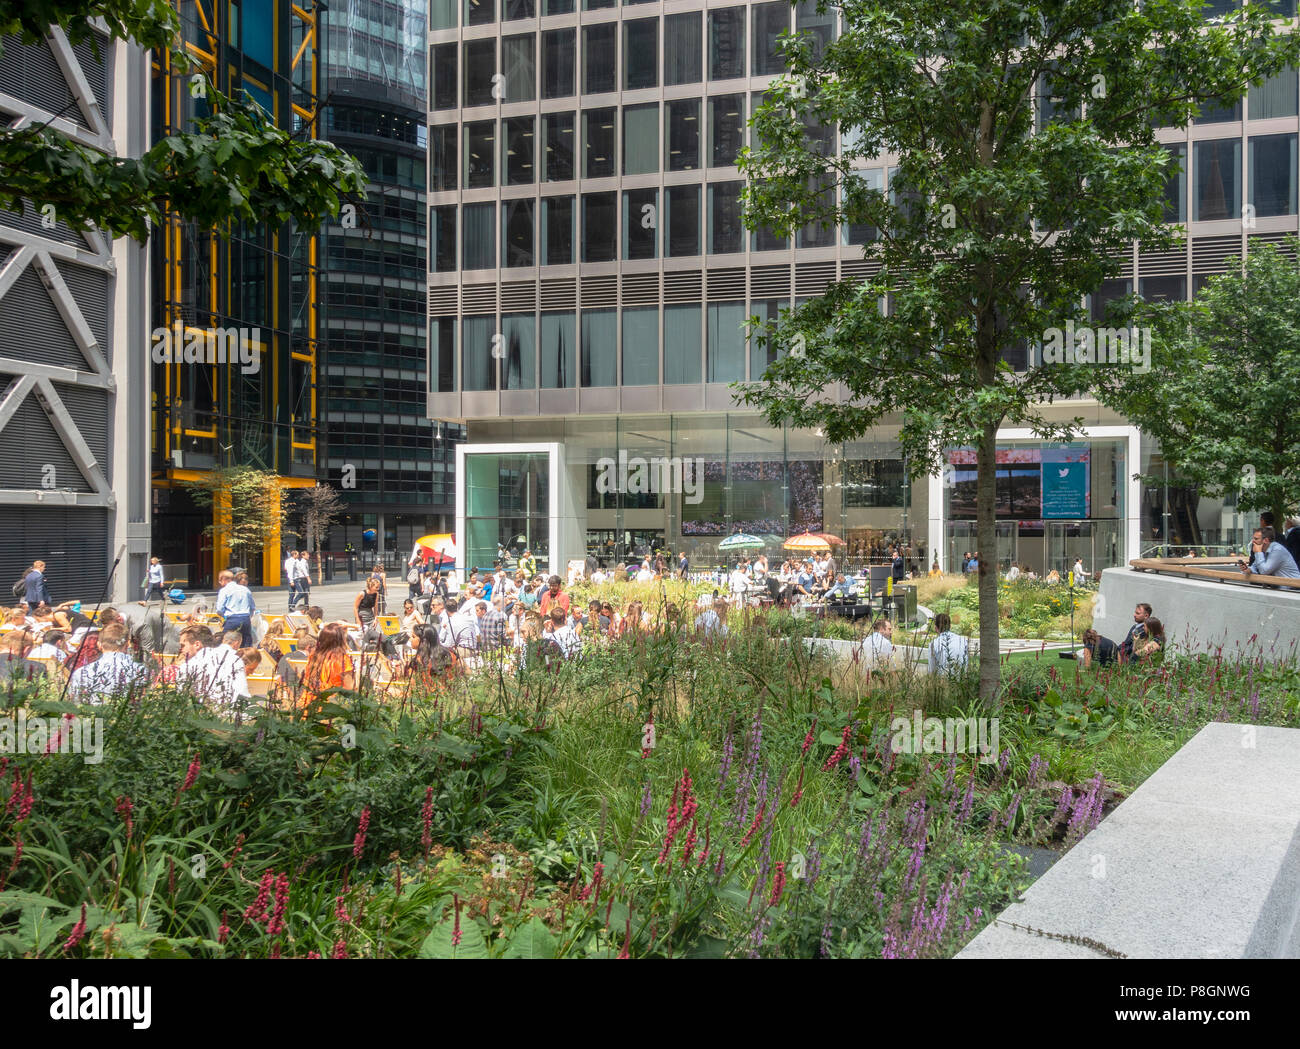 Tourists and local workers enjoying a sunny summer lunchtime in St Helen's Piazza, London. St Helen's Tower & Leadenhall Building. Flower beds, trees Stock Photo